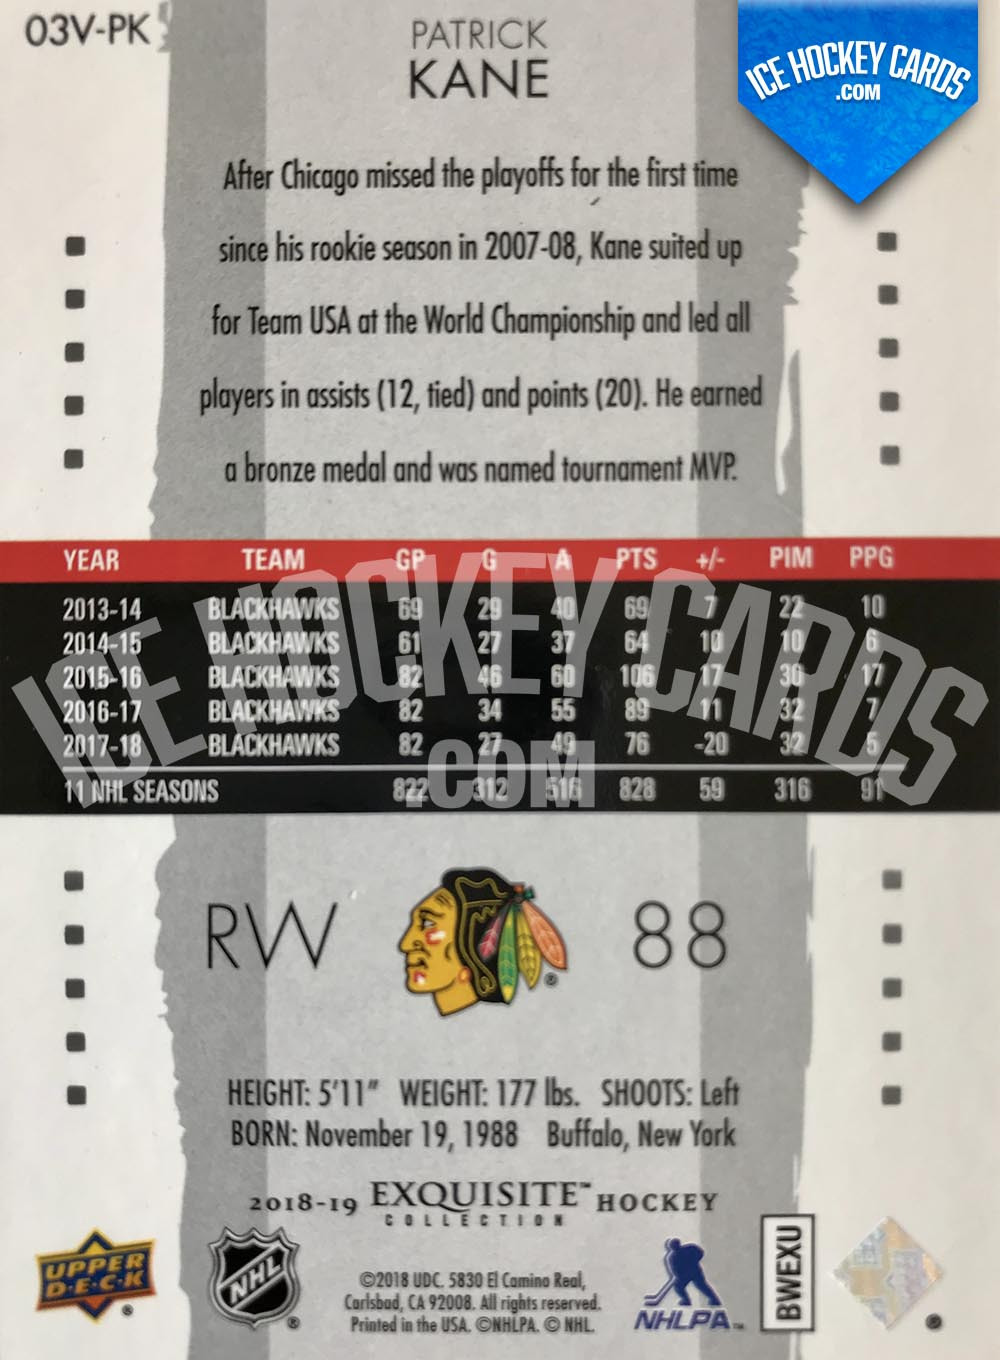 Upper Deck - Exquisite Collection 2018-19 - Patrick Kane Retro Exquisite Card # to 99 back